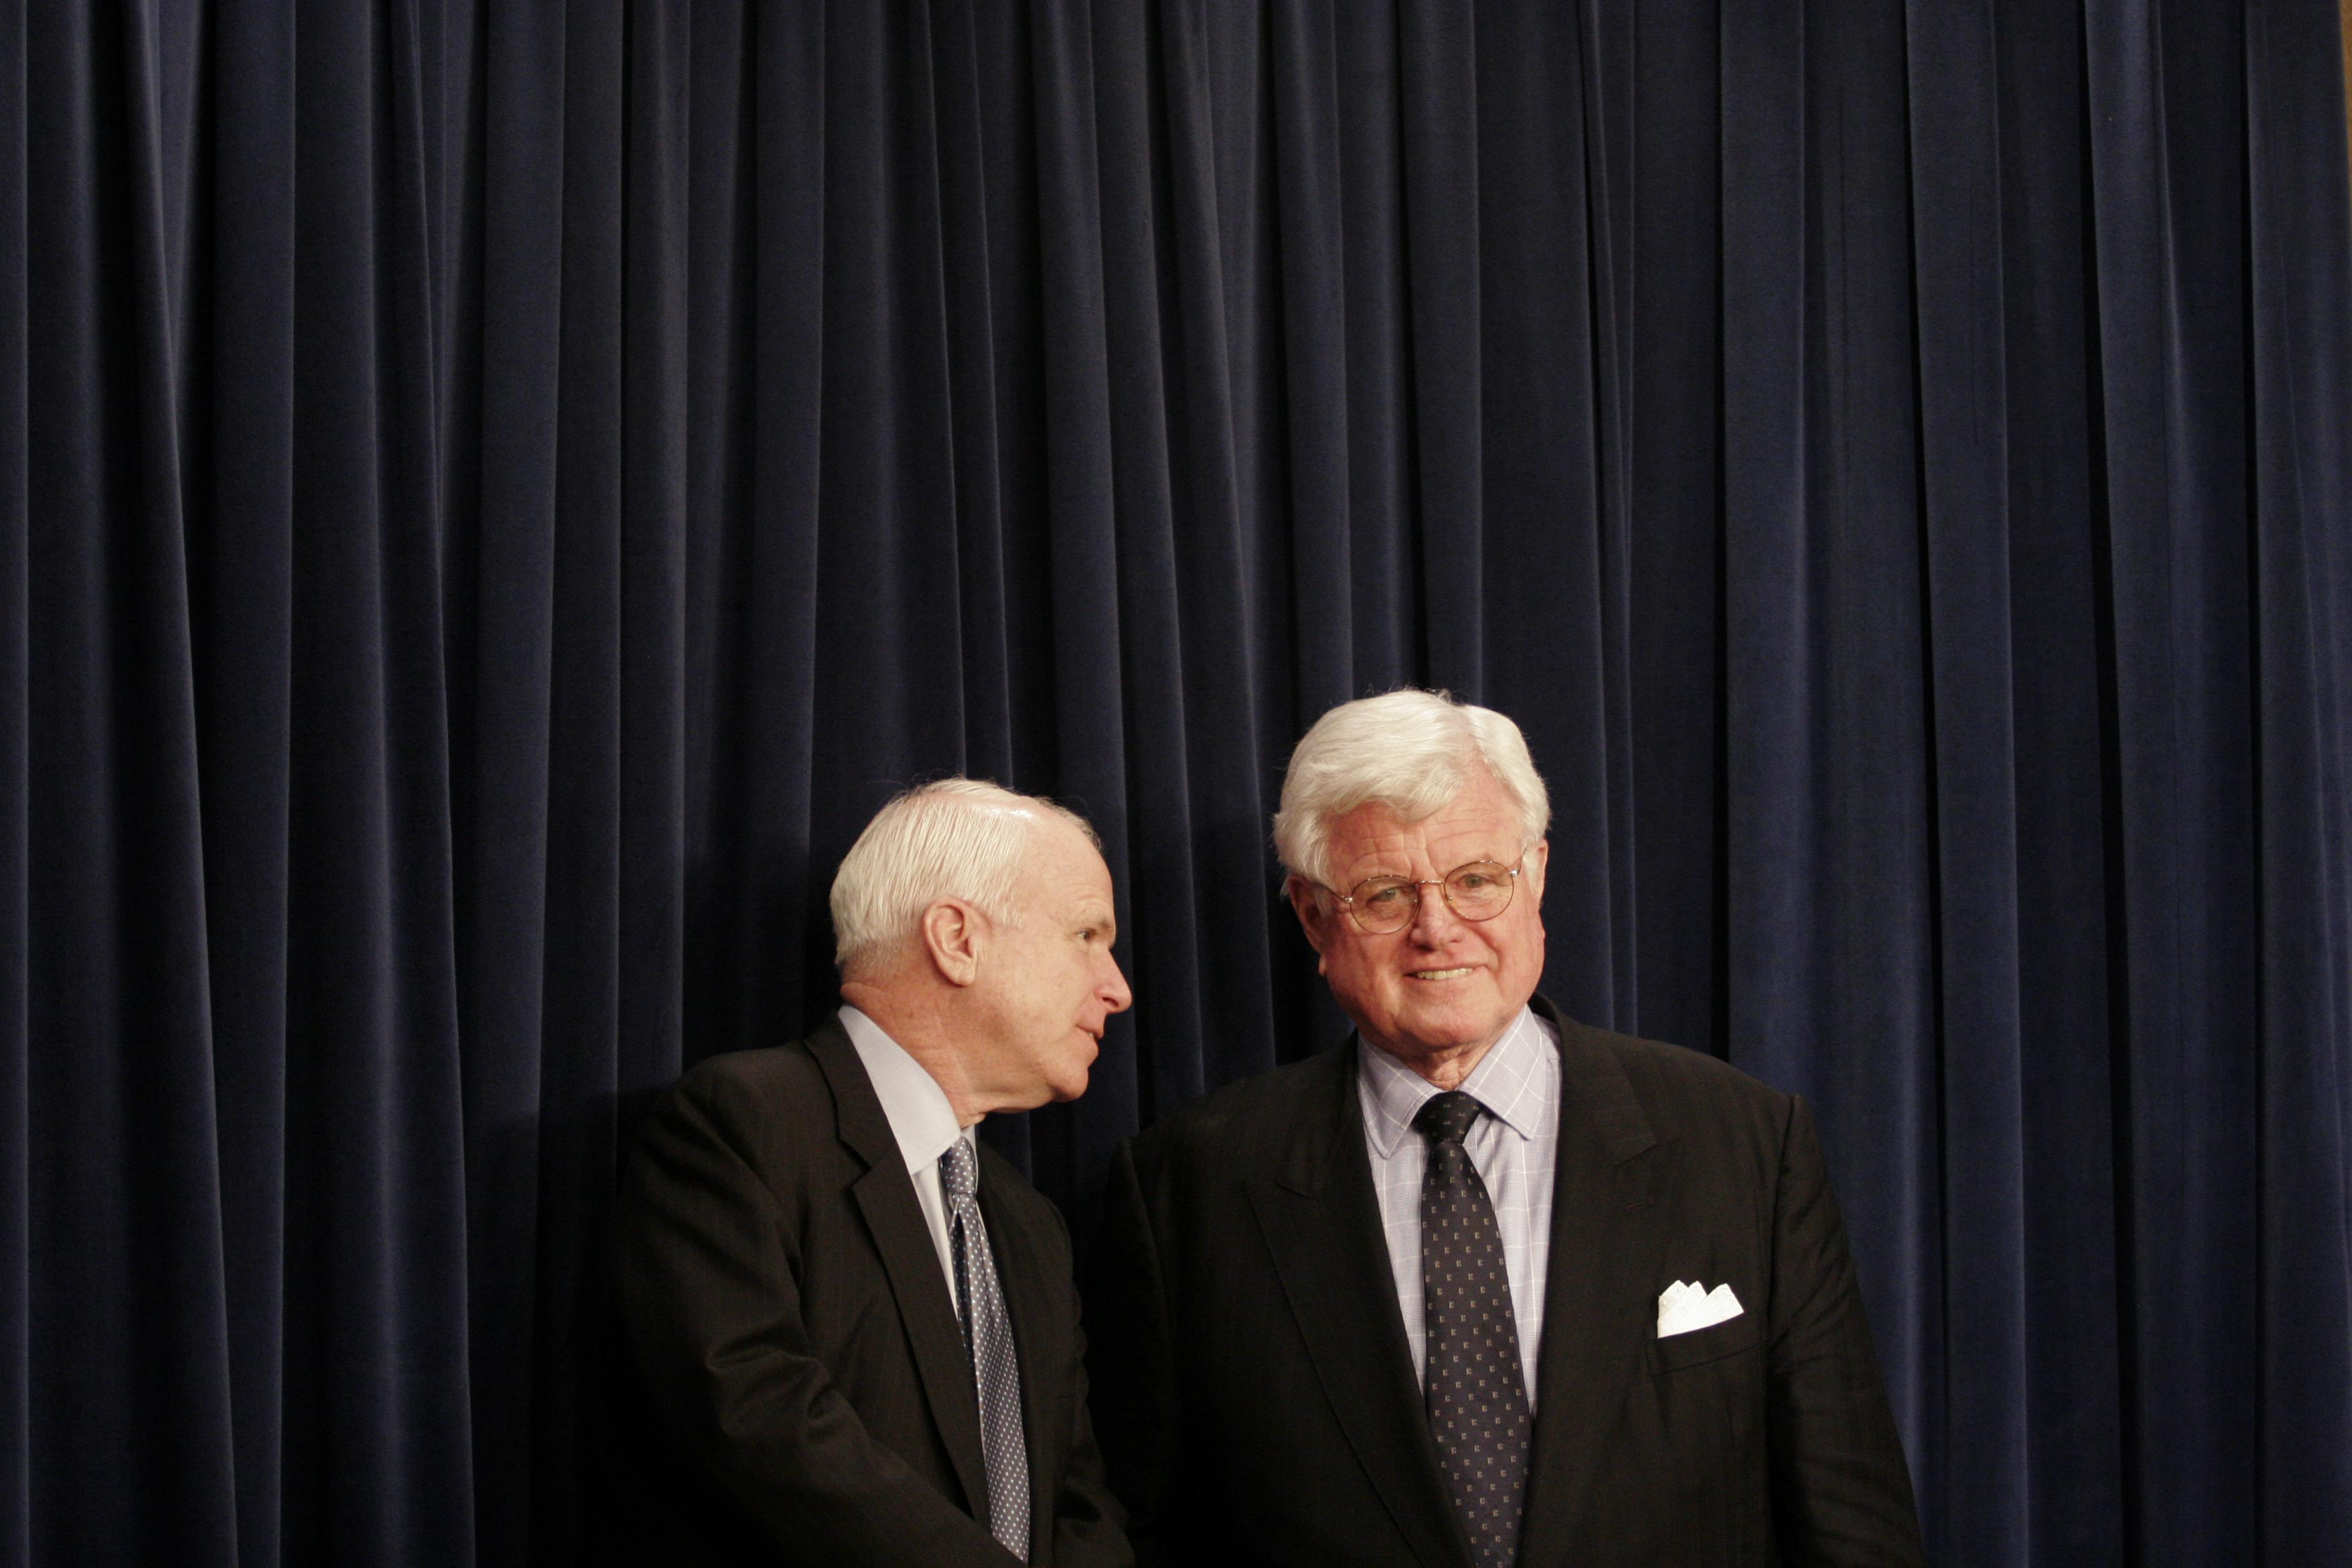 What today's senators can learn from Ted Kennedy